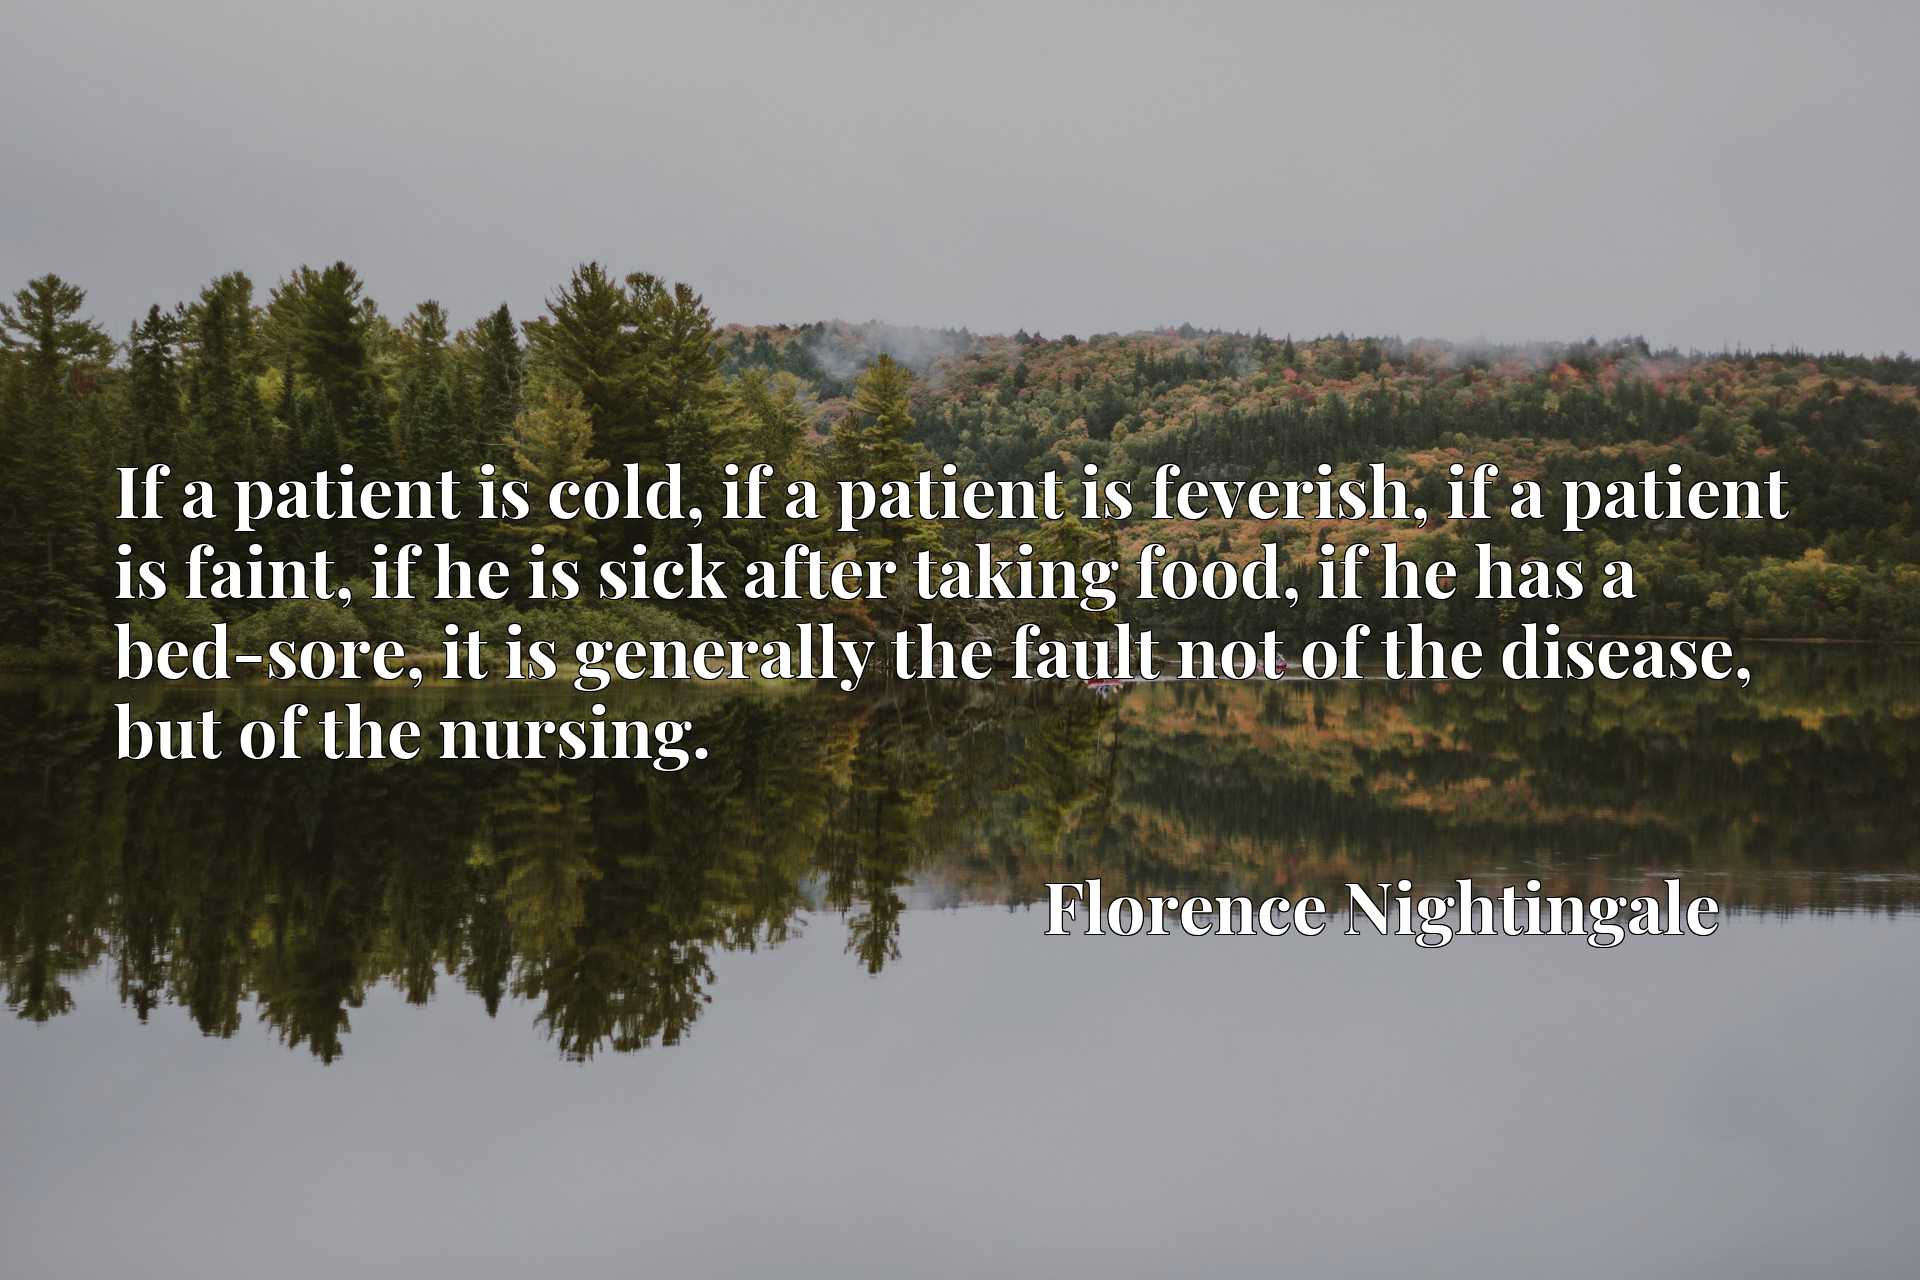 If a patient is cold, if a patient is feverish, if a patient is faint, if he is sick after taking food, if he has a bed-sore, it is generally the fault not of the disease, but of the nursing.